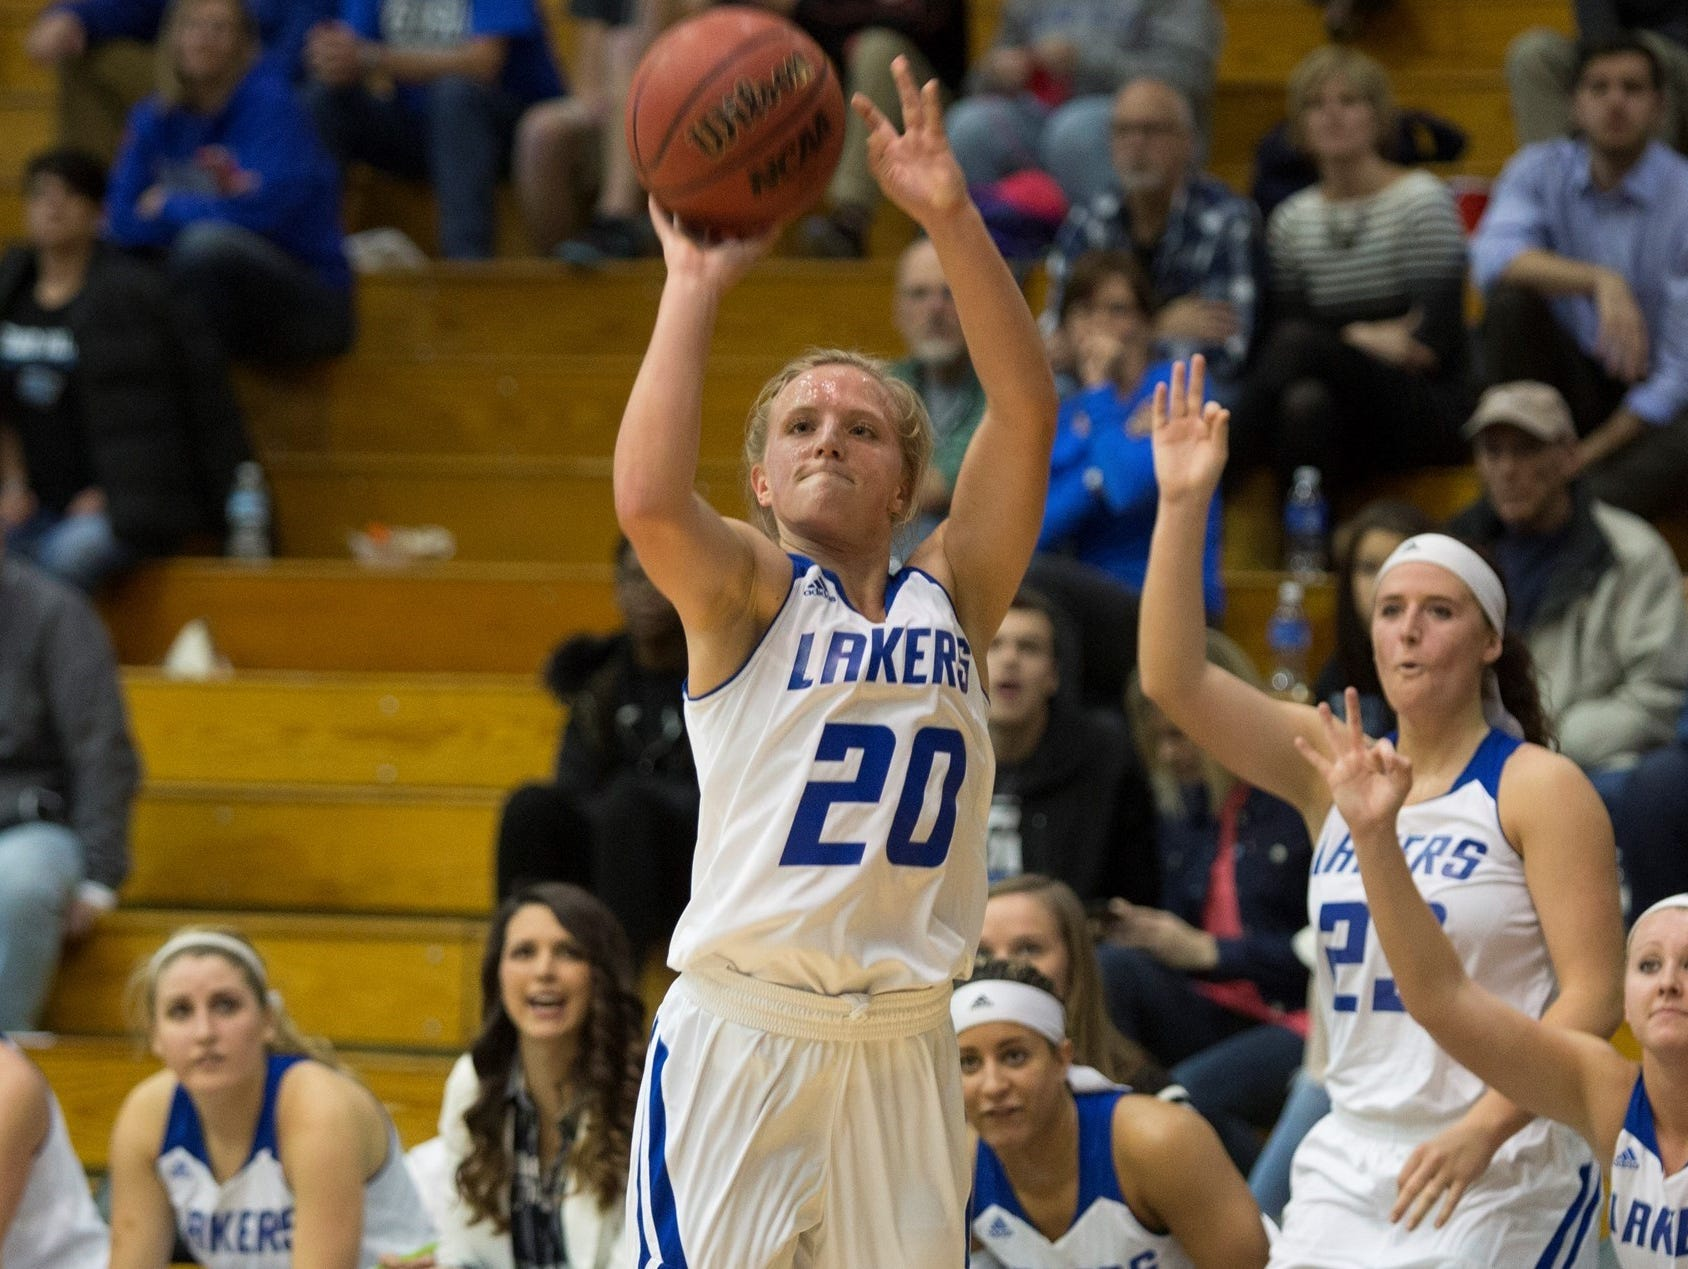 Grand Valley State University junior and Climax-Scotts graduate Janae Langs.